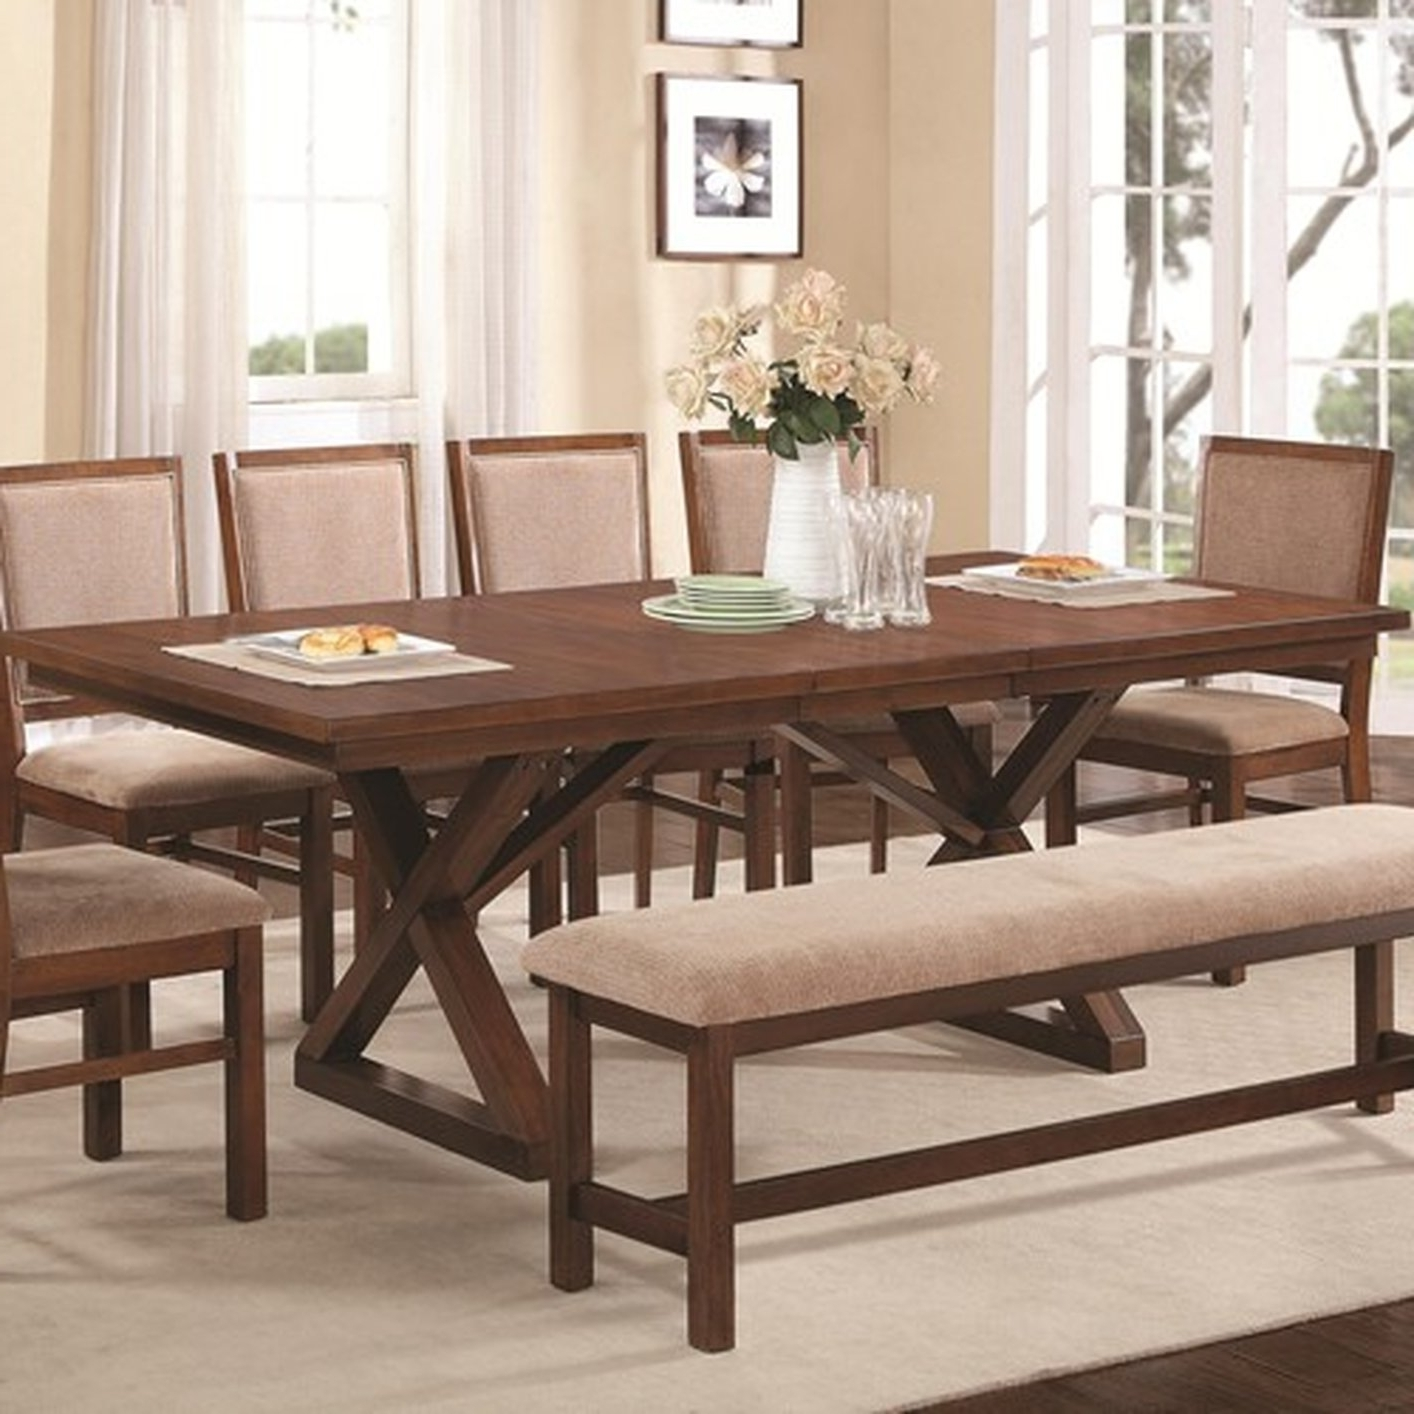 Brown Wood Dining Table – Steal A Sofa Furniture Outlet Los Angeles Ca In Popular Sofa Chairs With Dining Table (View 3 of 20)